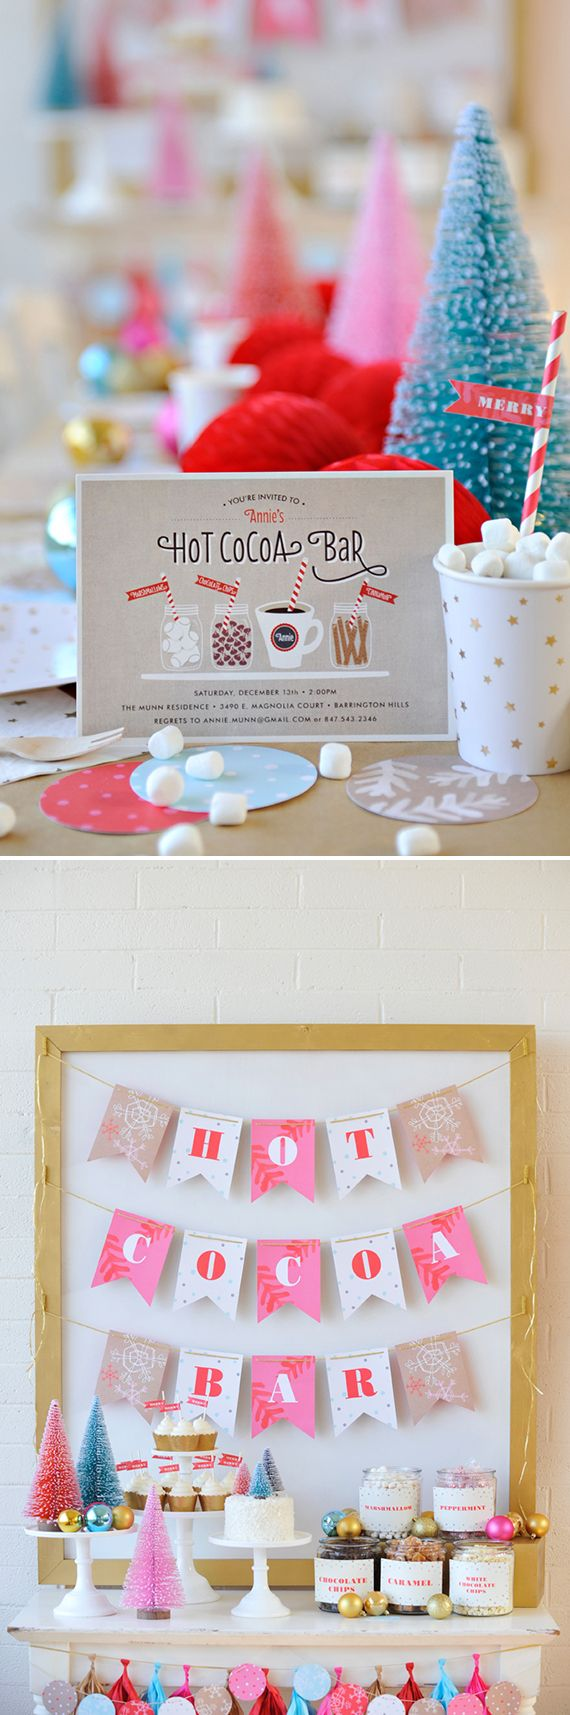 Get into the Holiday spirit with a Hot Cocoa party. Find the perfect invitations and party decor at Minted.com